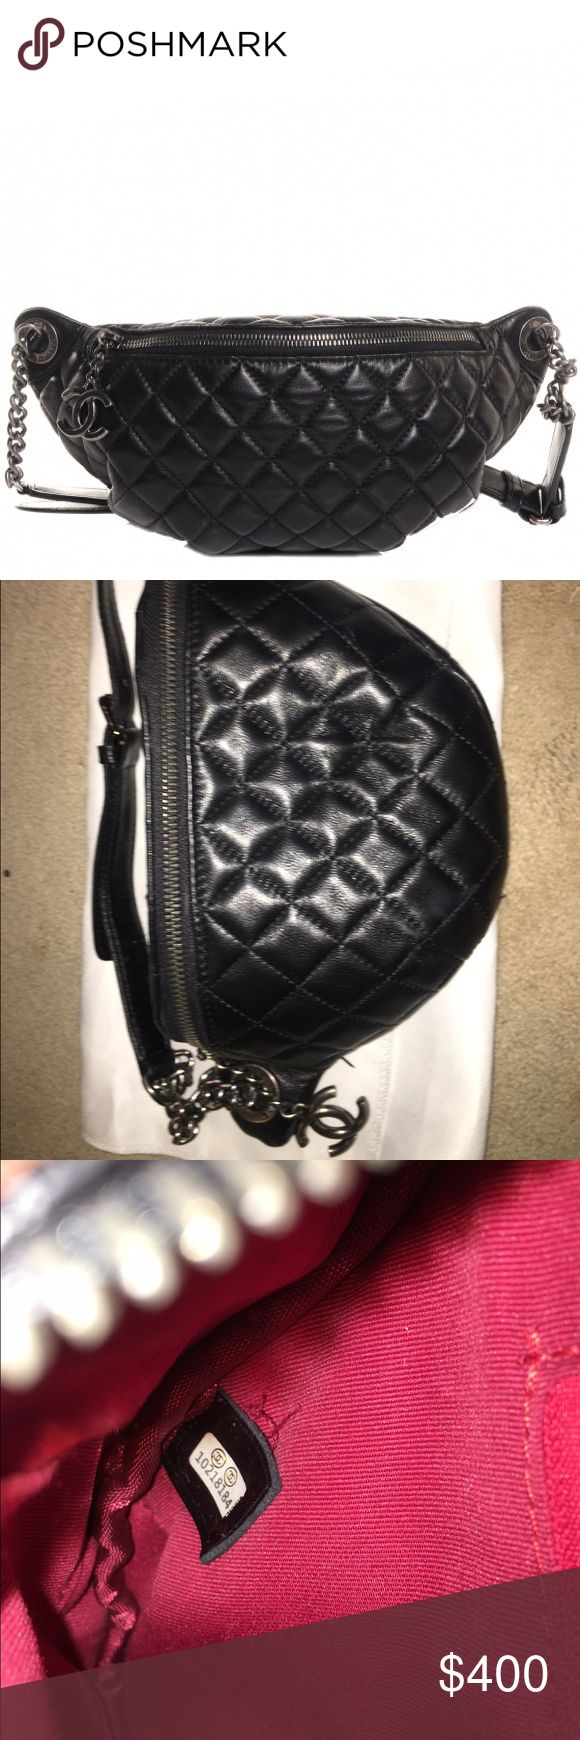 Chanel Fanny Pack I got this as a gift not sure of the authenticity but I've never used it if you would like more pics just ask 😬 CHANEL Bags Crossbody Bags